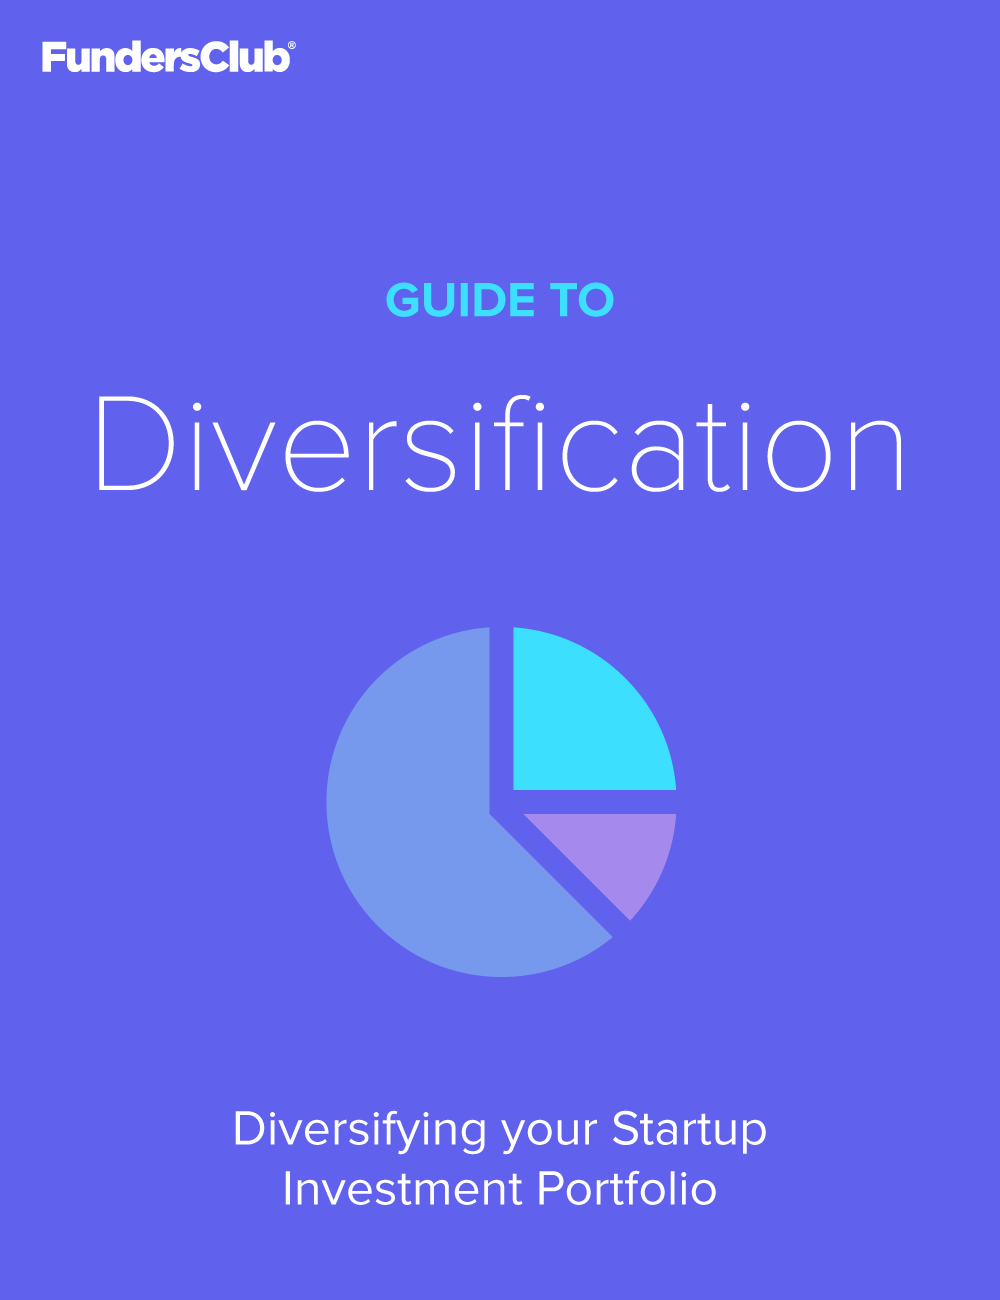 How to Diversify Your Startup Investment Portfolio